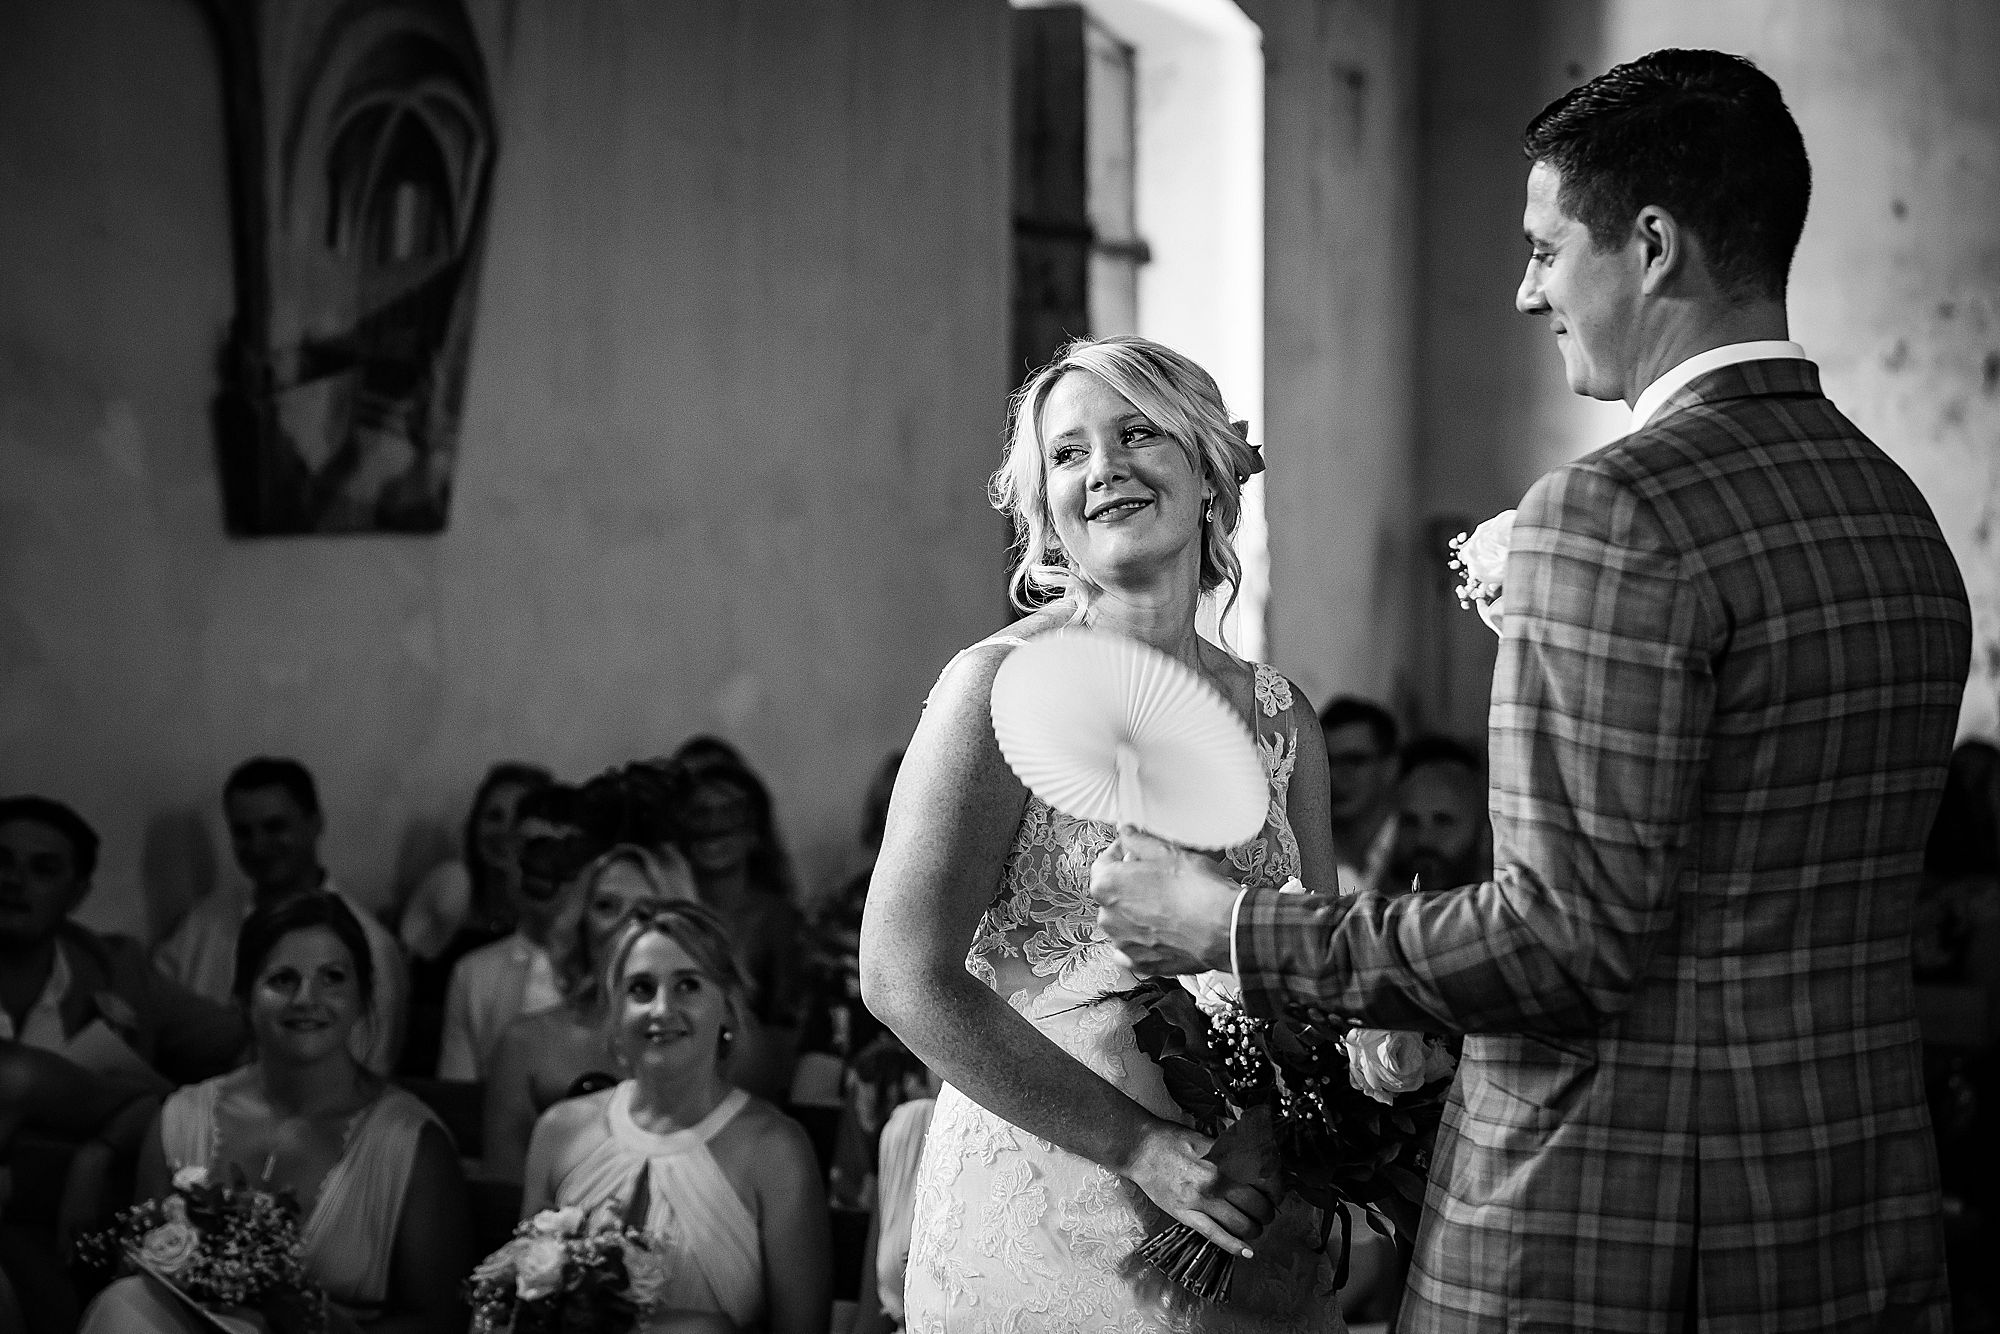 the wedding ceremony at Chateau de Queille Wedding